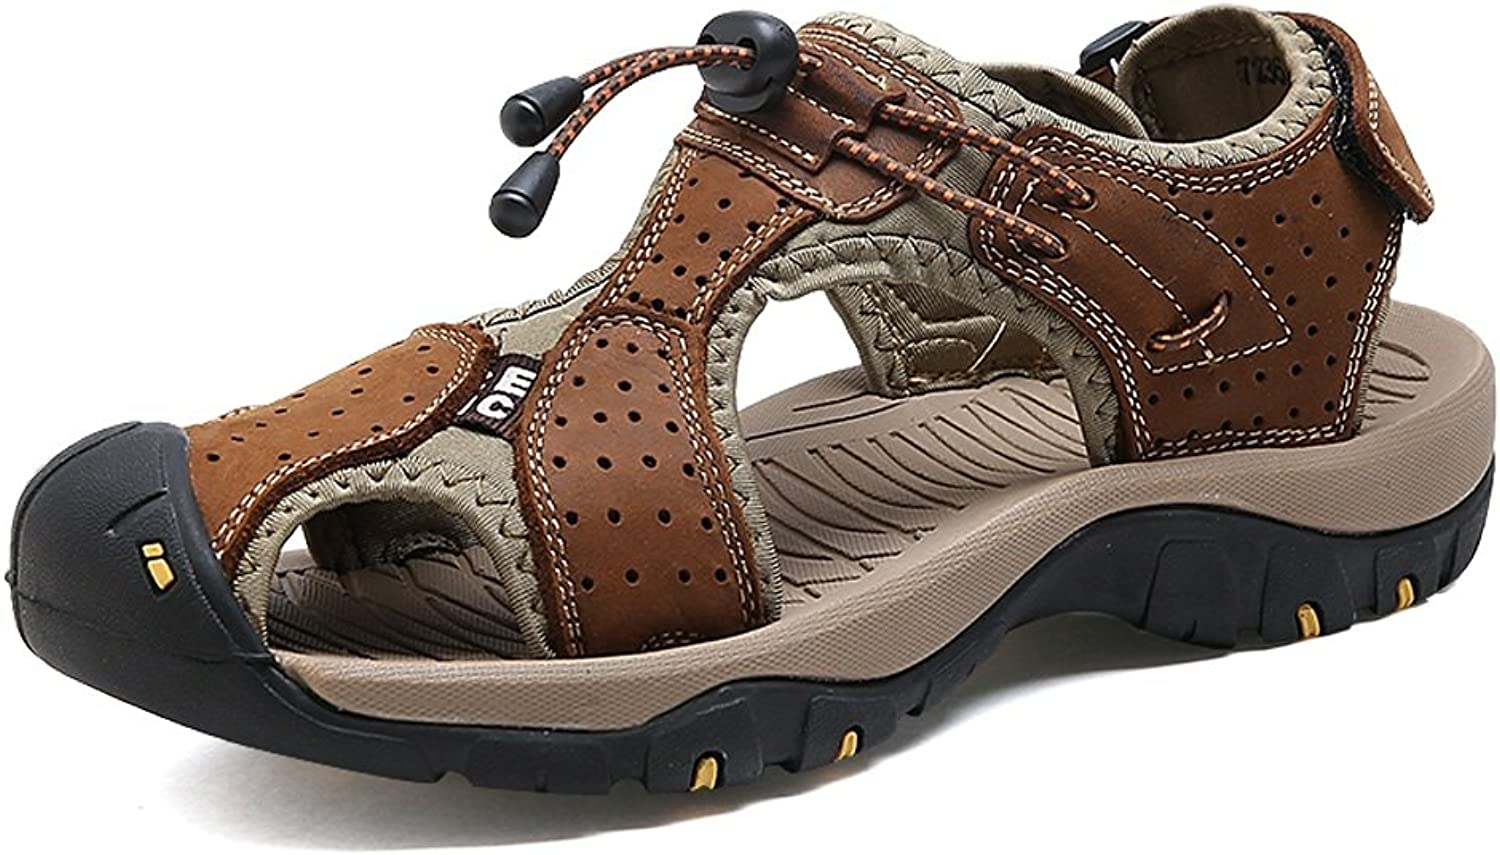 JIALUN-Sandals Comfortable Men's Beach Sandals Genuine Leather Breathable Perforation Upper shoes